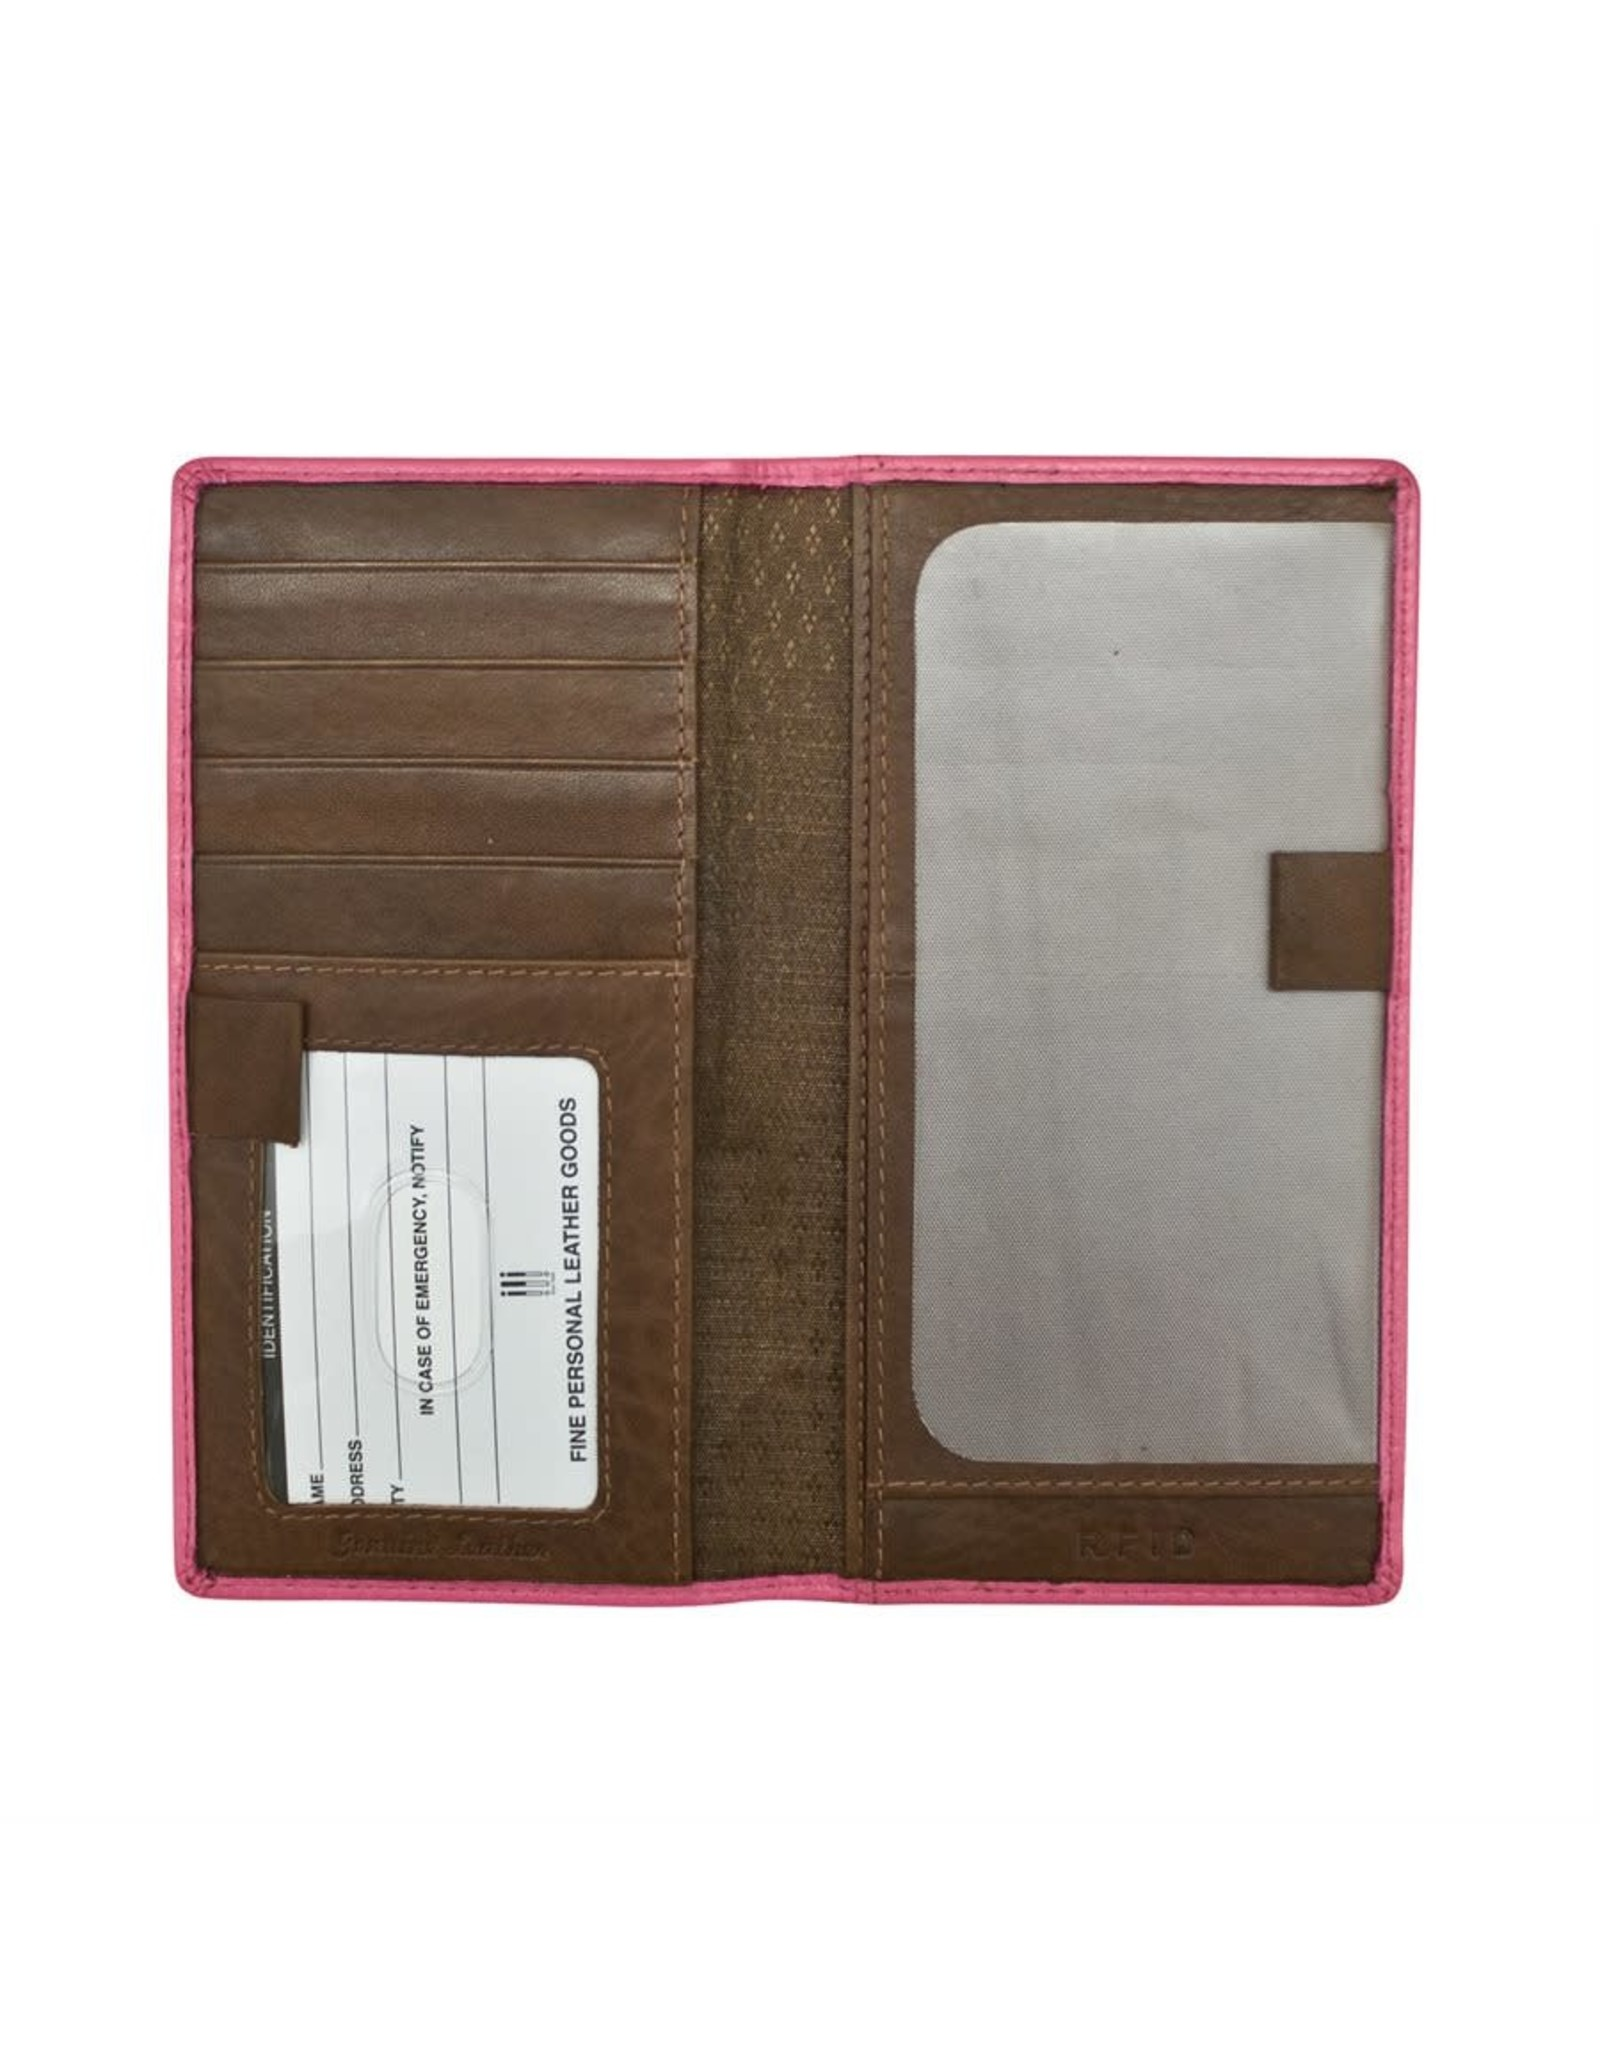 Leather Handbags and Accessories 7406 Hot Pink/Toffee - RFID Checkbook Cover